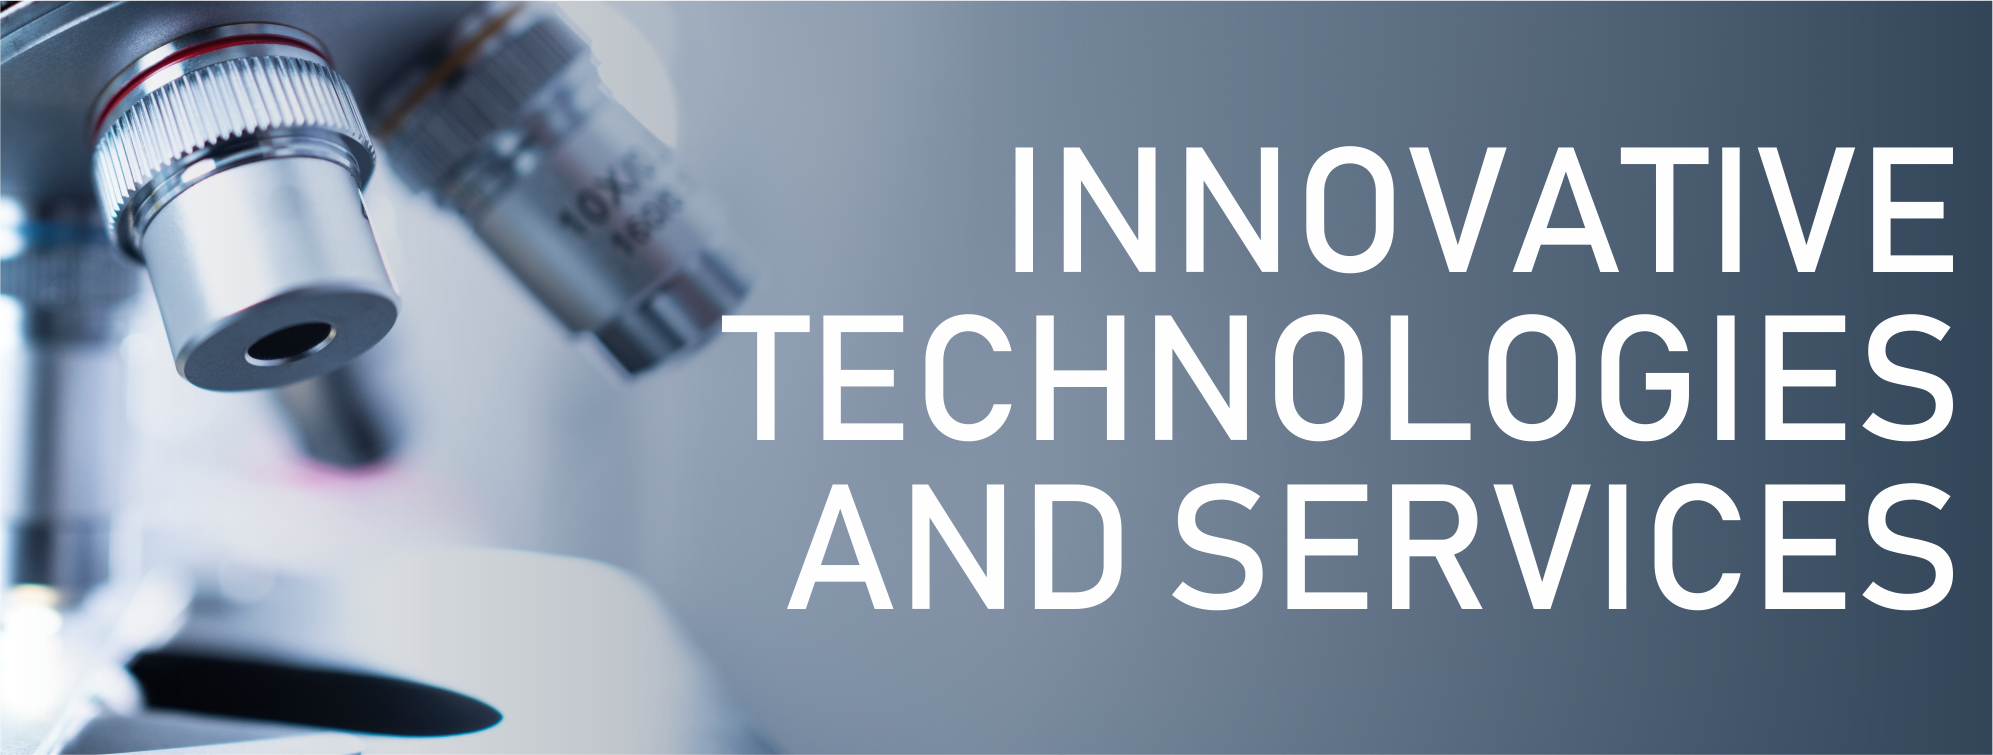 Innovative Technologies and Services